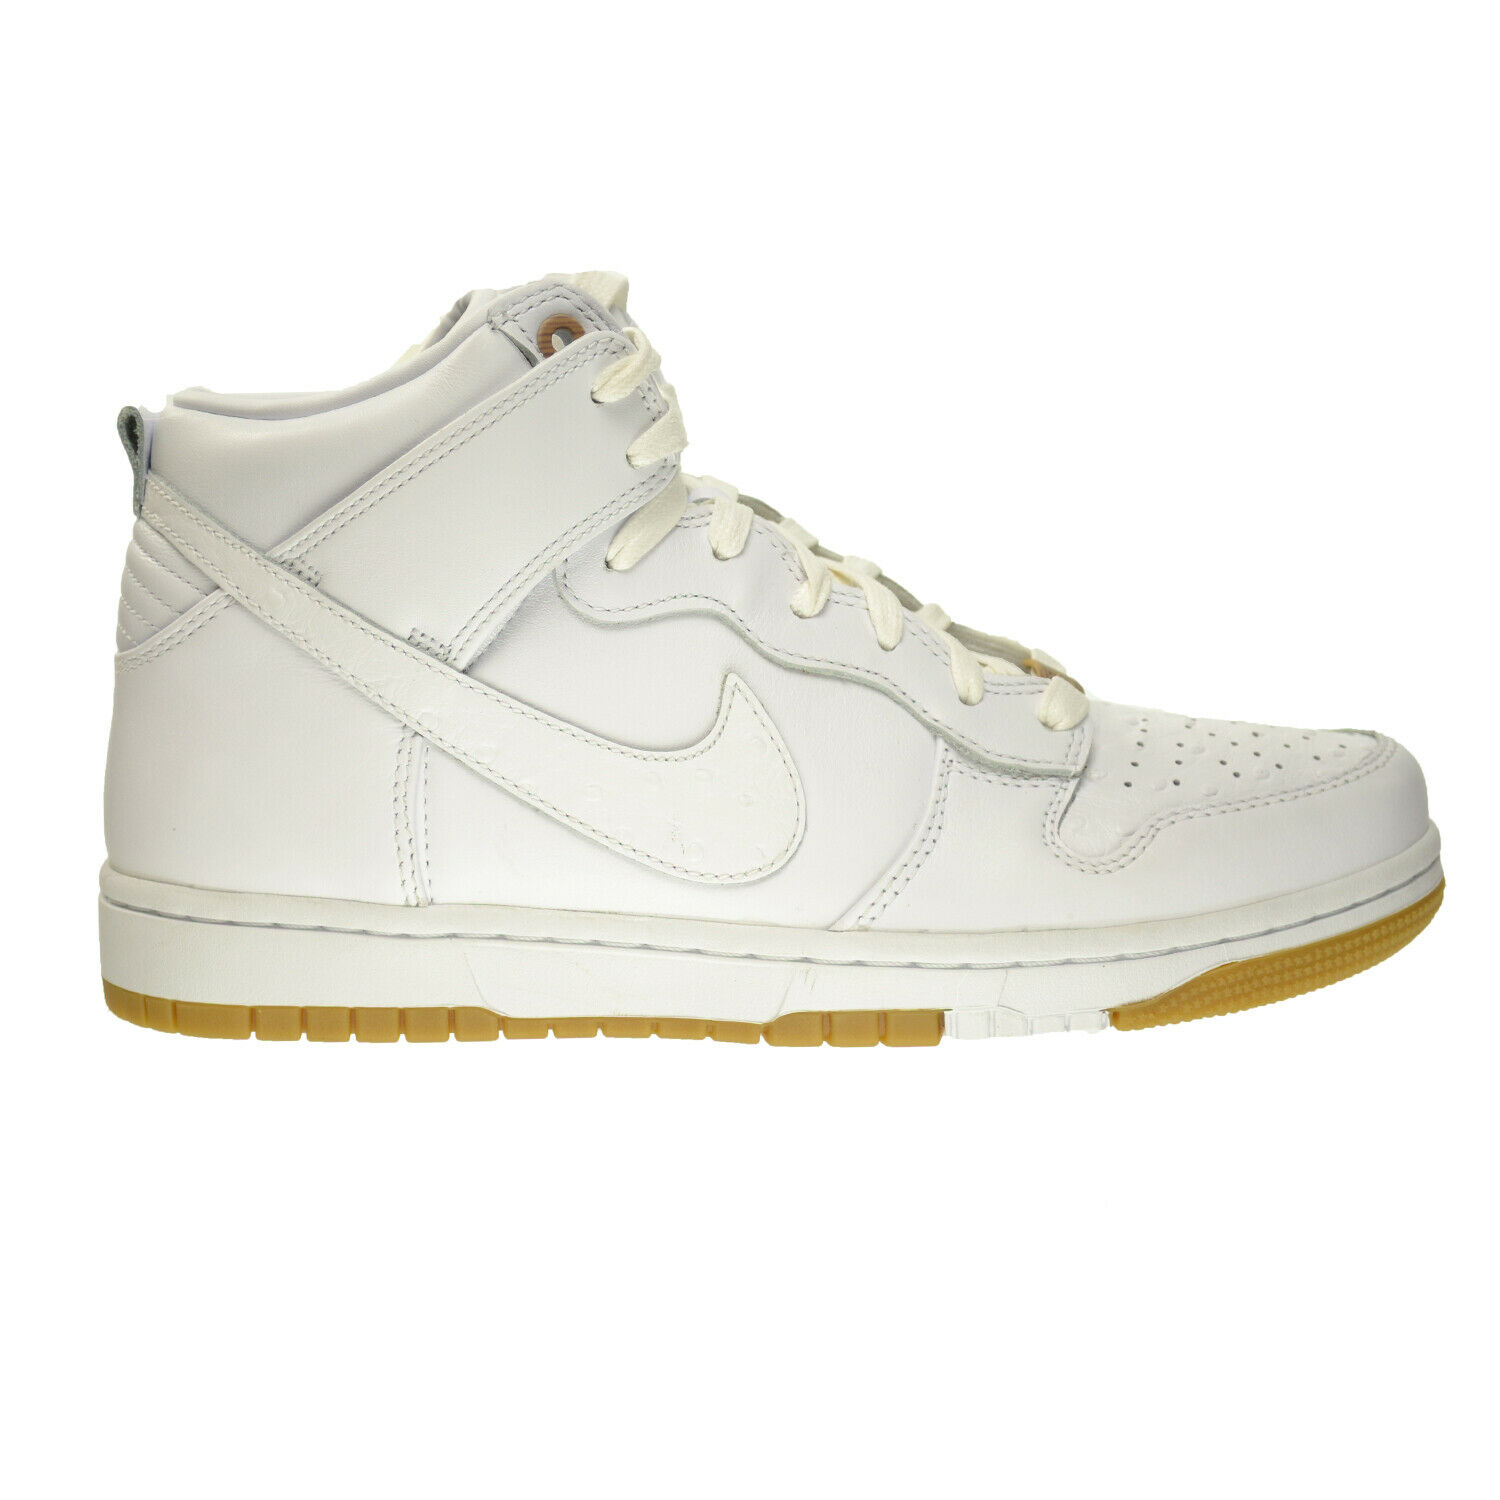 74da25a6739 Dunk Premium QS Men's shoes White White 716714-101 Comfort Nike ...